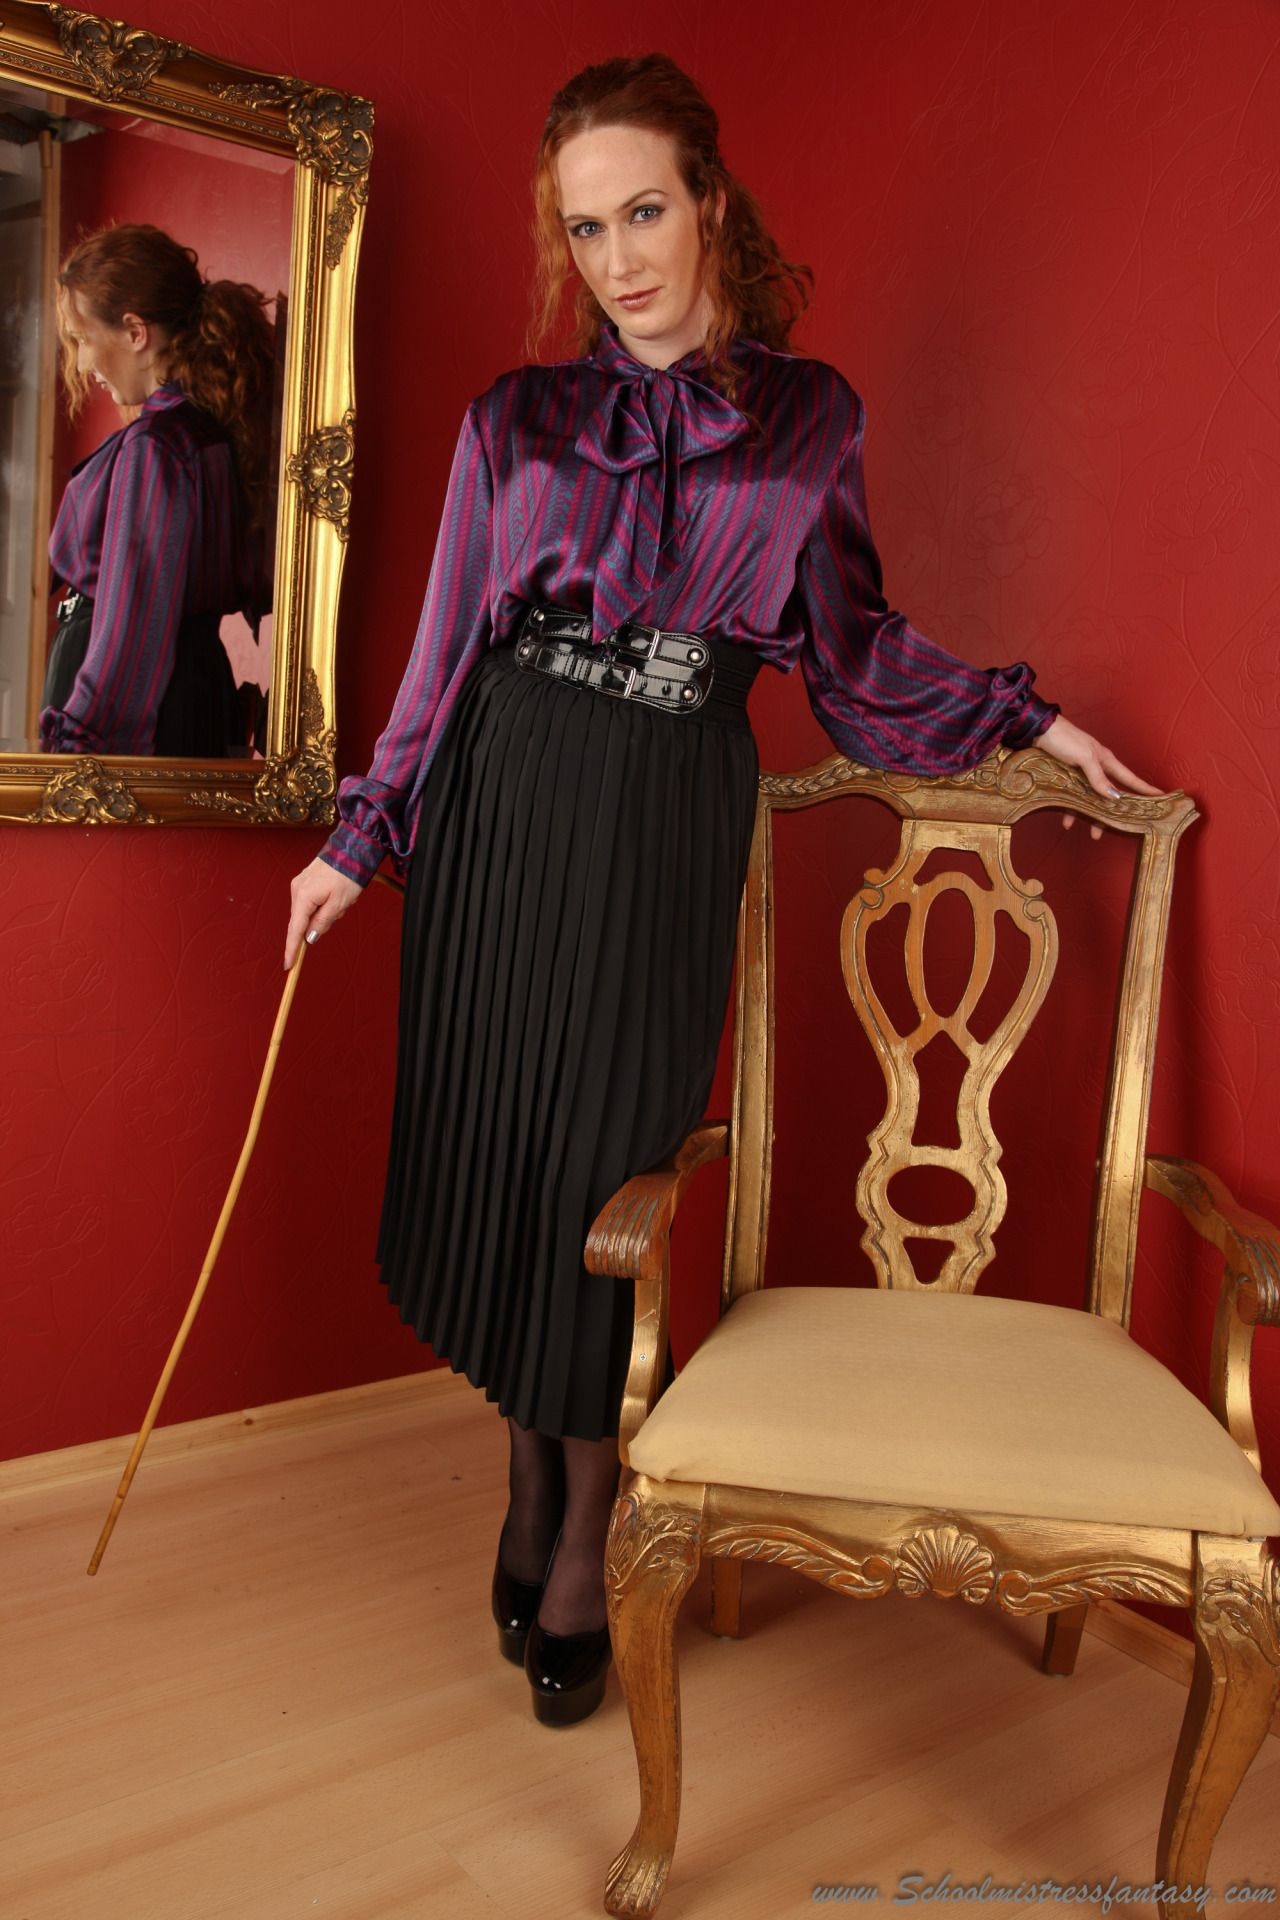 Leggy Ladies a must for slaves and leglovers….go to forum